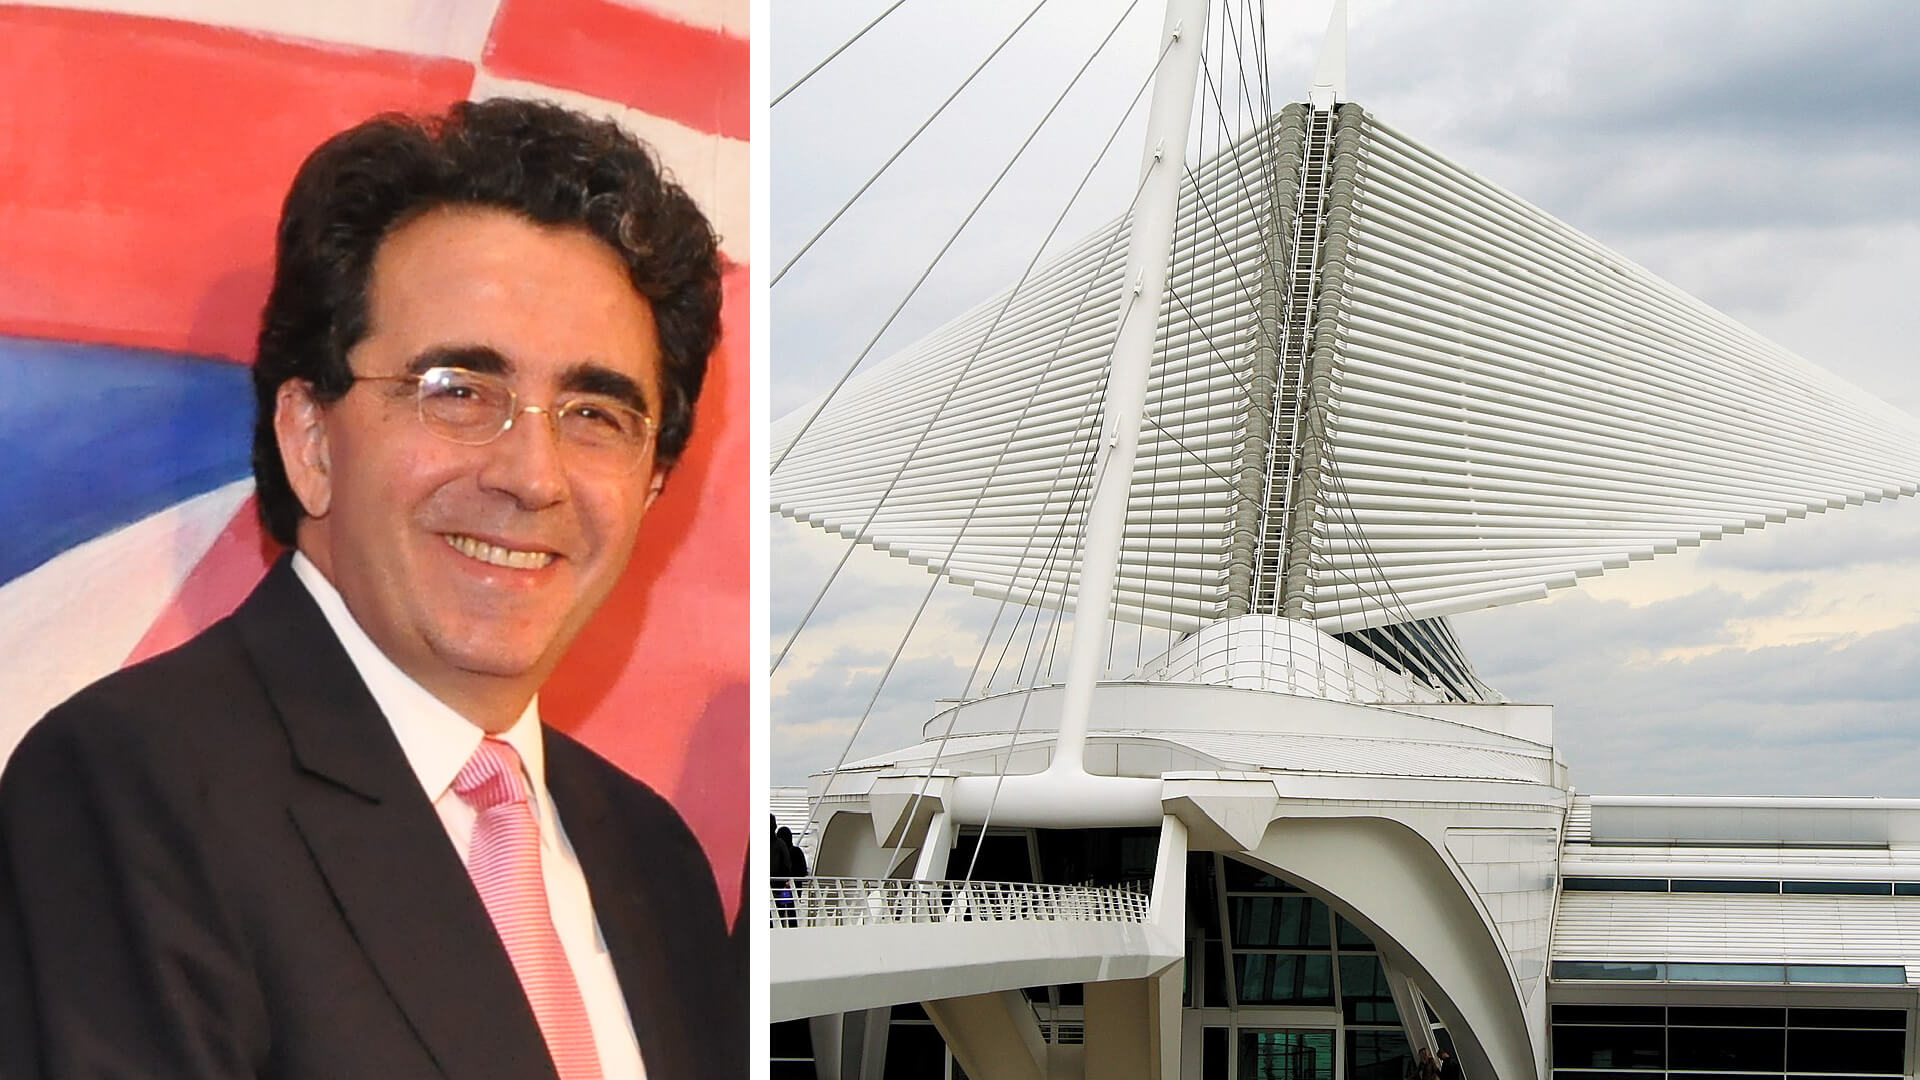 (Left): Spanish architect Santiago Calatrava Valls and (right) his Quadracci Pavilion at the Milwaukee Art Museum | Santiago Calatrava | STIRworld